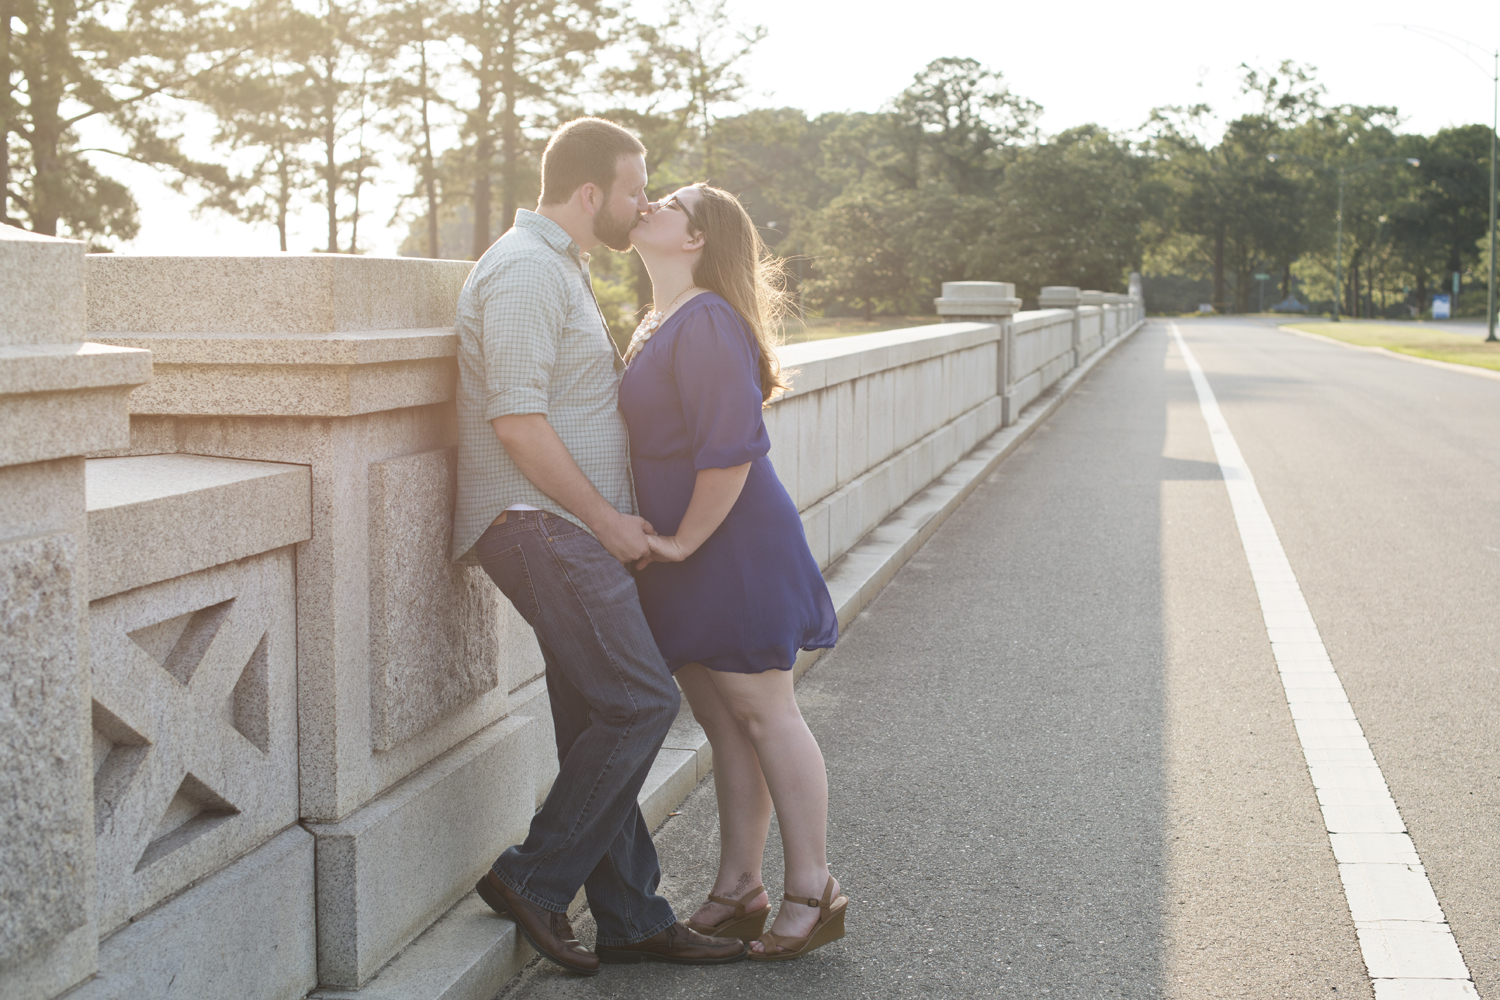 Sunset engagement pictures at Lions Bridge Park in Newport News, Virginia